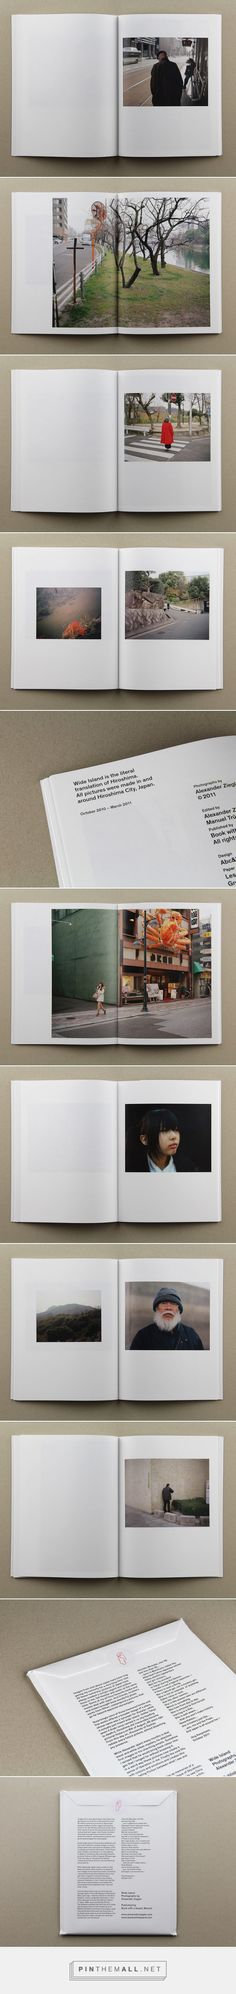 #layout #photobook #book Wide Island by Alexander Ziegler